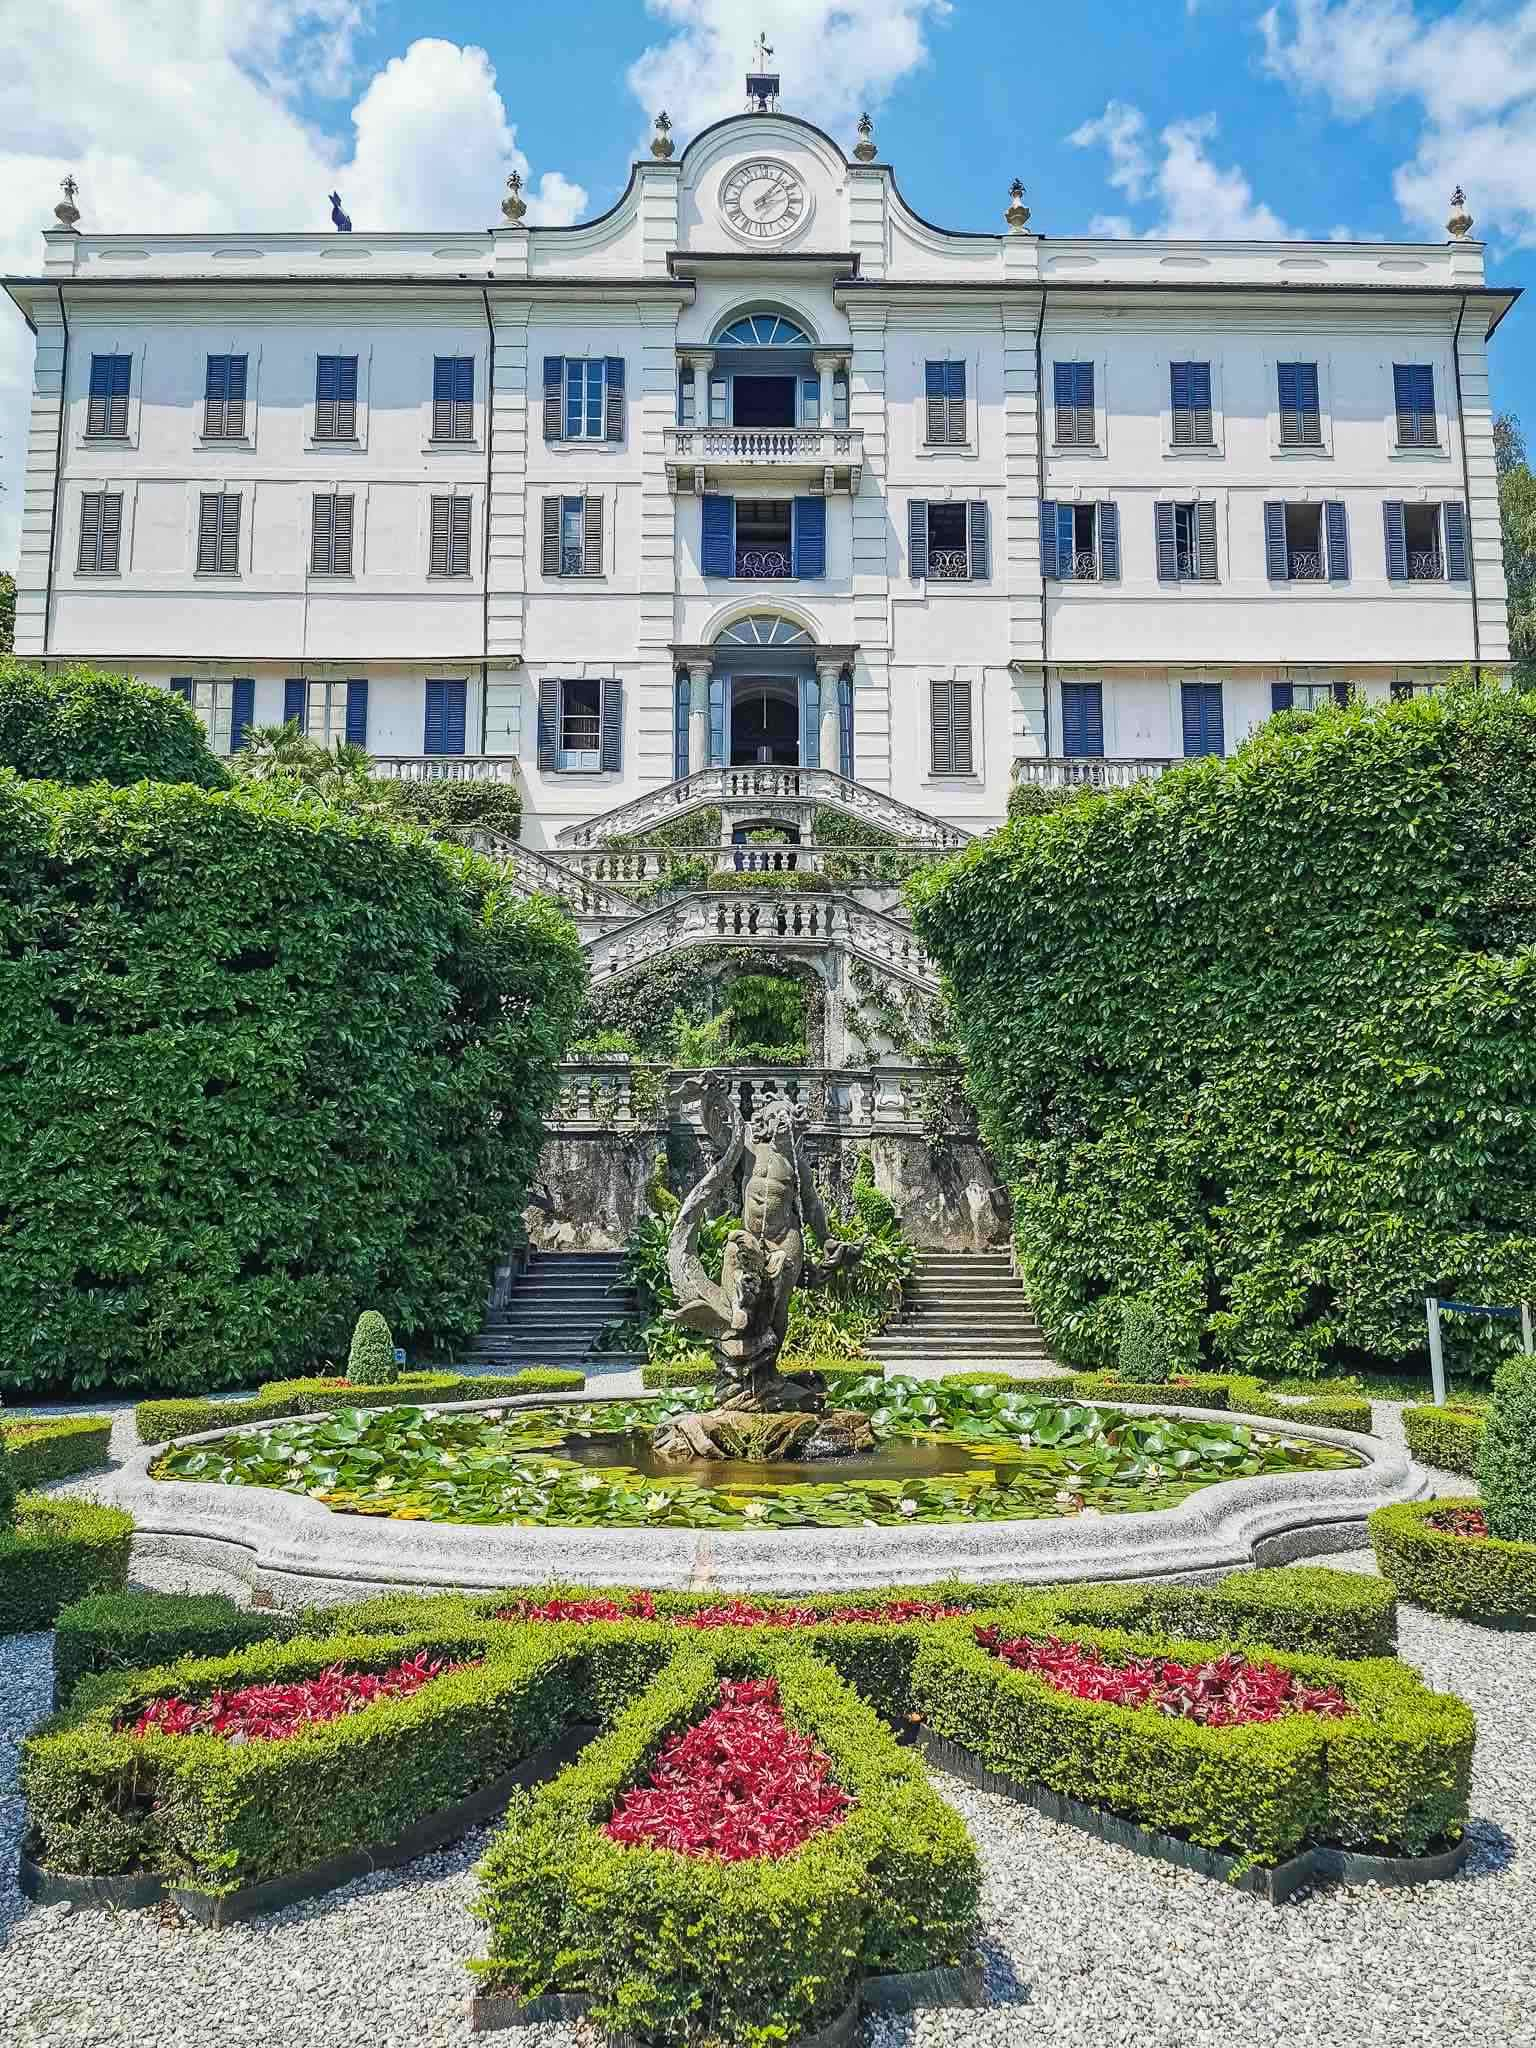 The grandiose entrance to Villa Carlotta in Lake Como, with the fountain